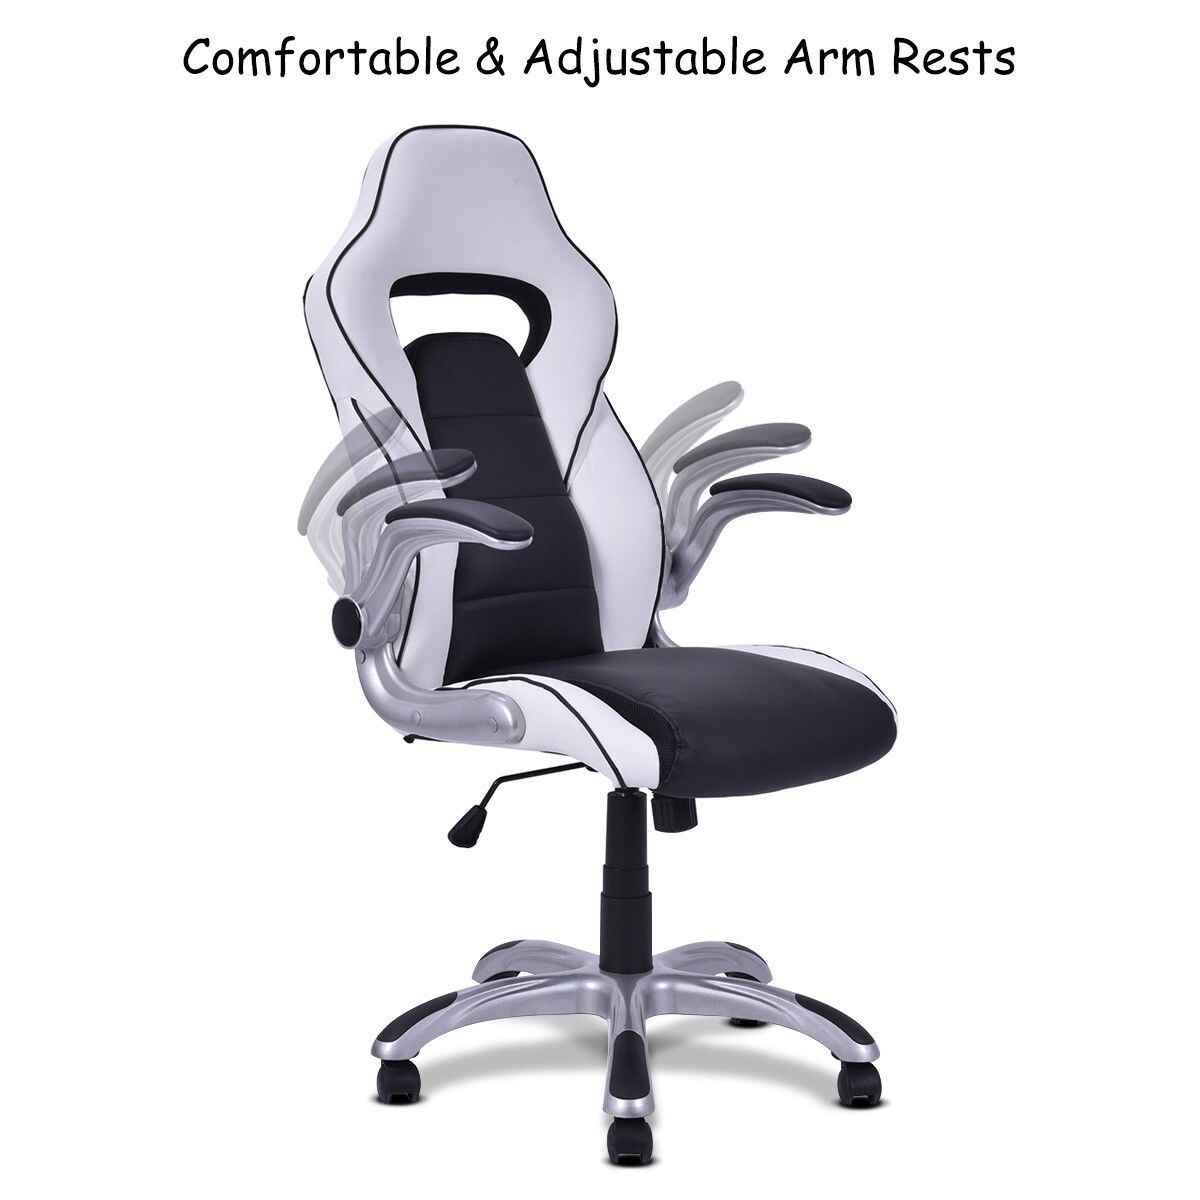 comfortable office chairs for gaming retro metal garden shop costway high back executive racing style chair adjustable armrest black white free shipping today overstock com 17056591